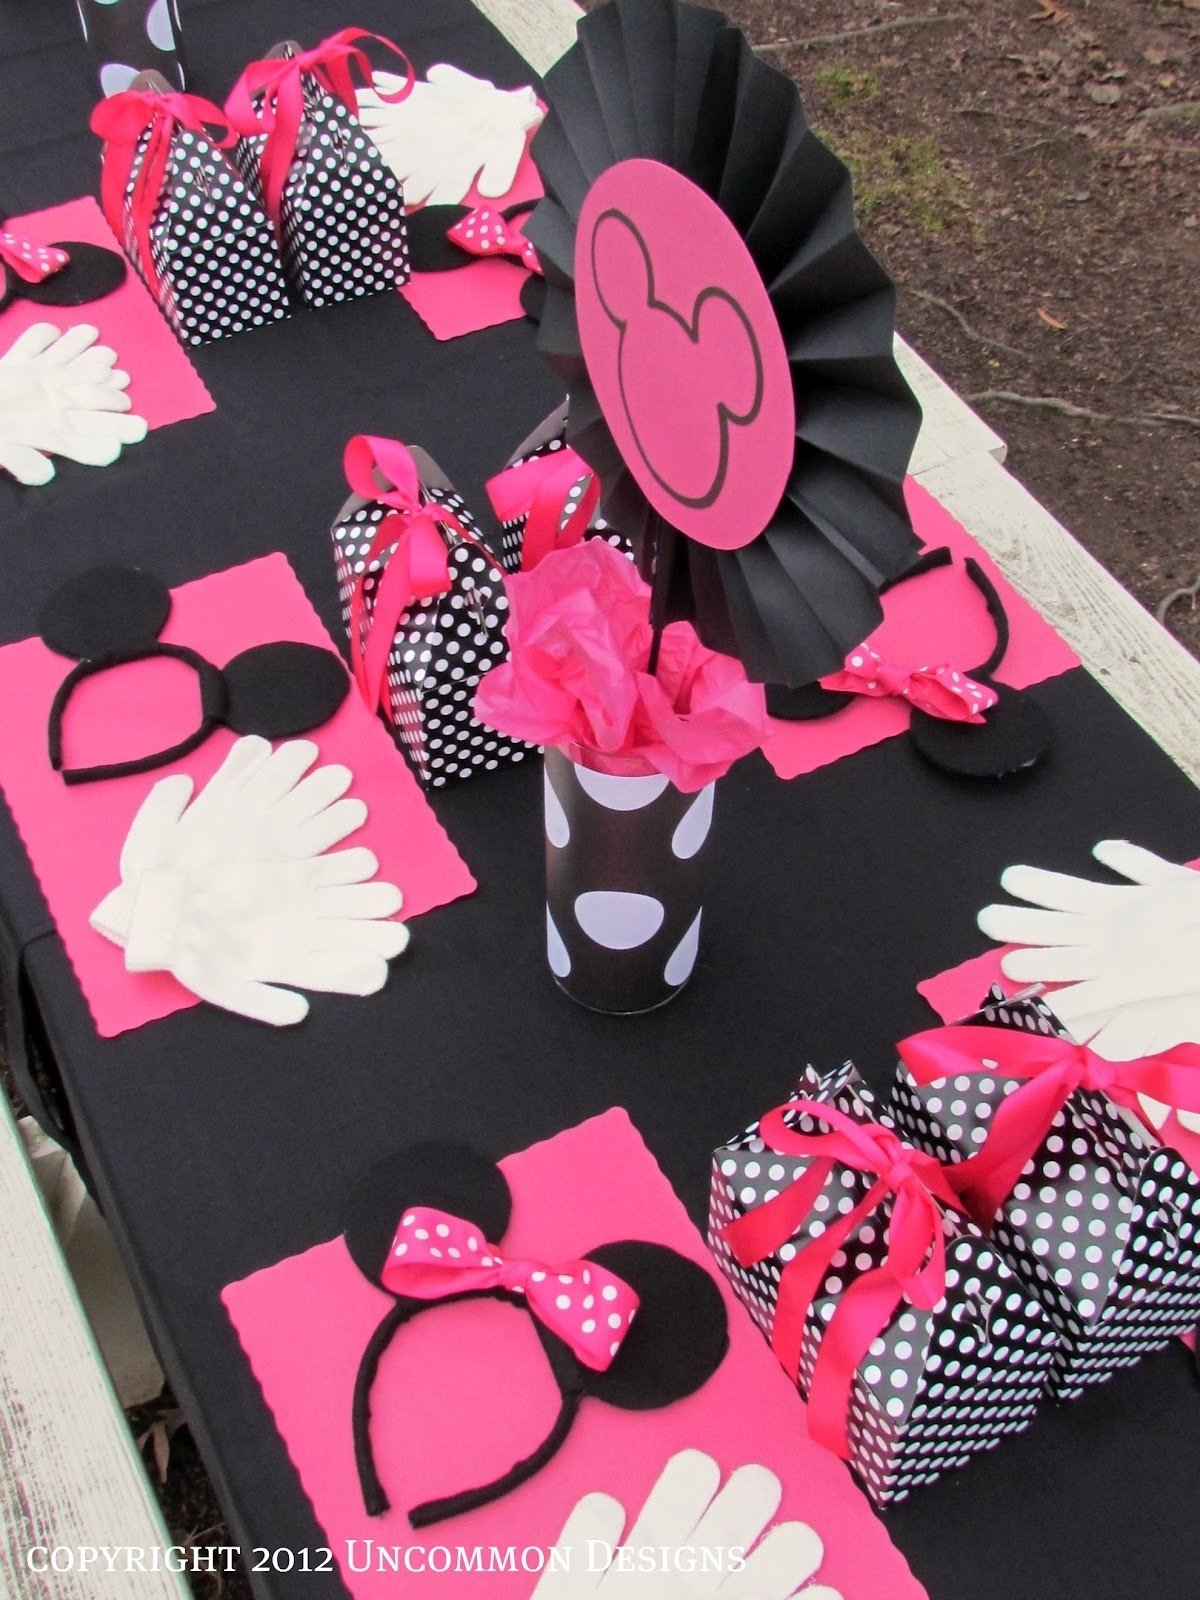 10 Elegant Minnie Mouse Birthday Party Ideas For A 2 Year Old a minnie mouse birthday party uncommon designs 2020